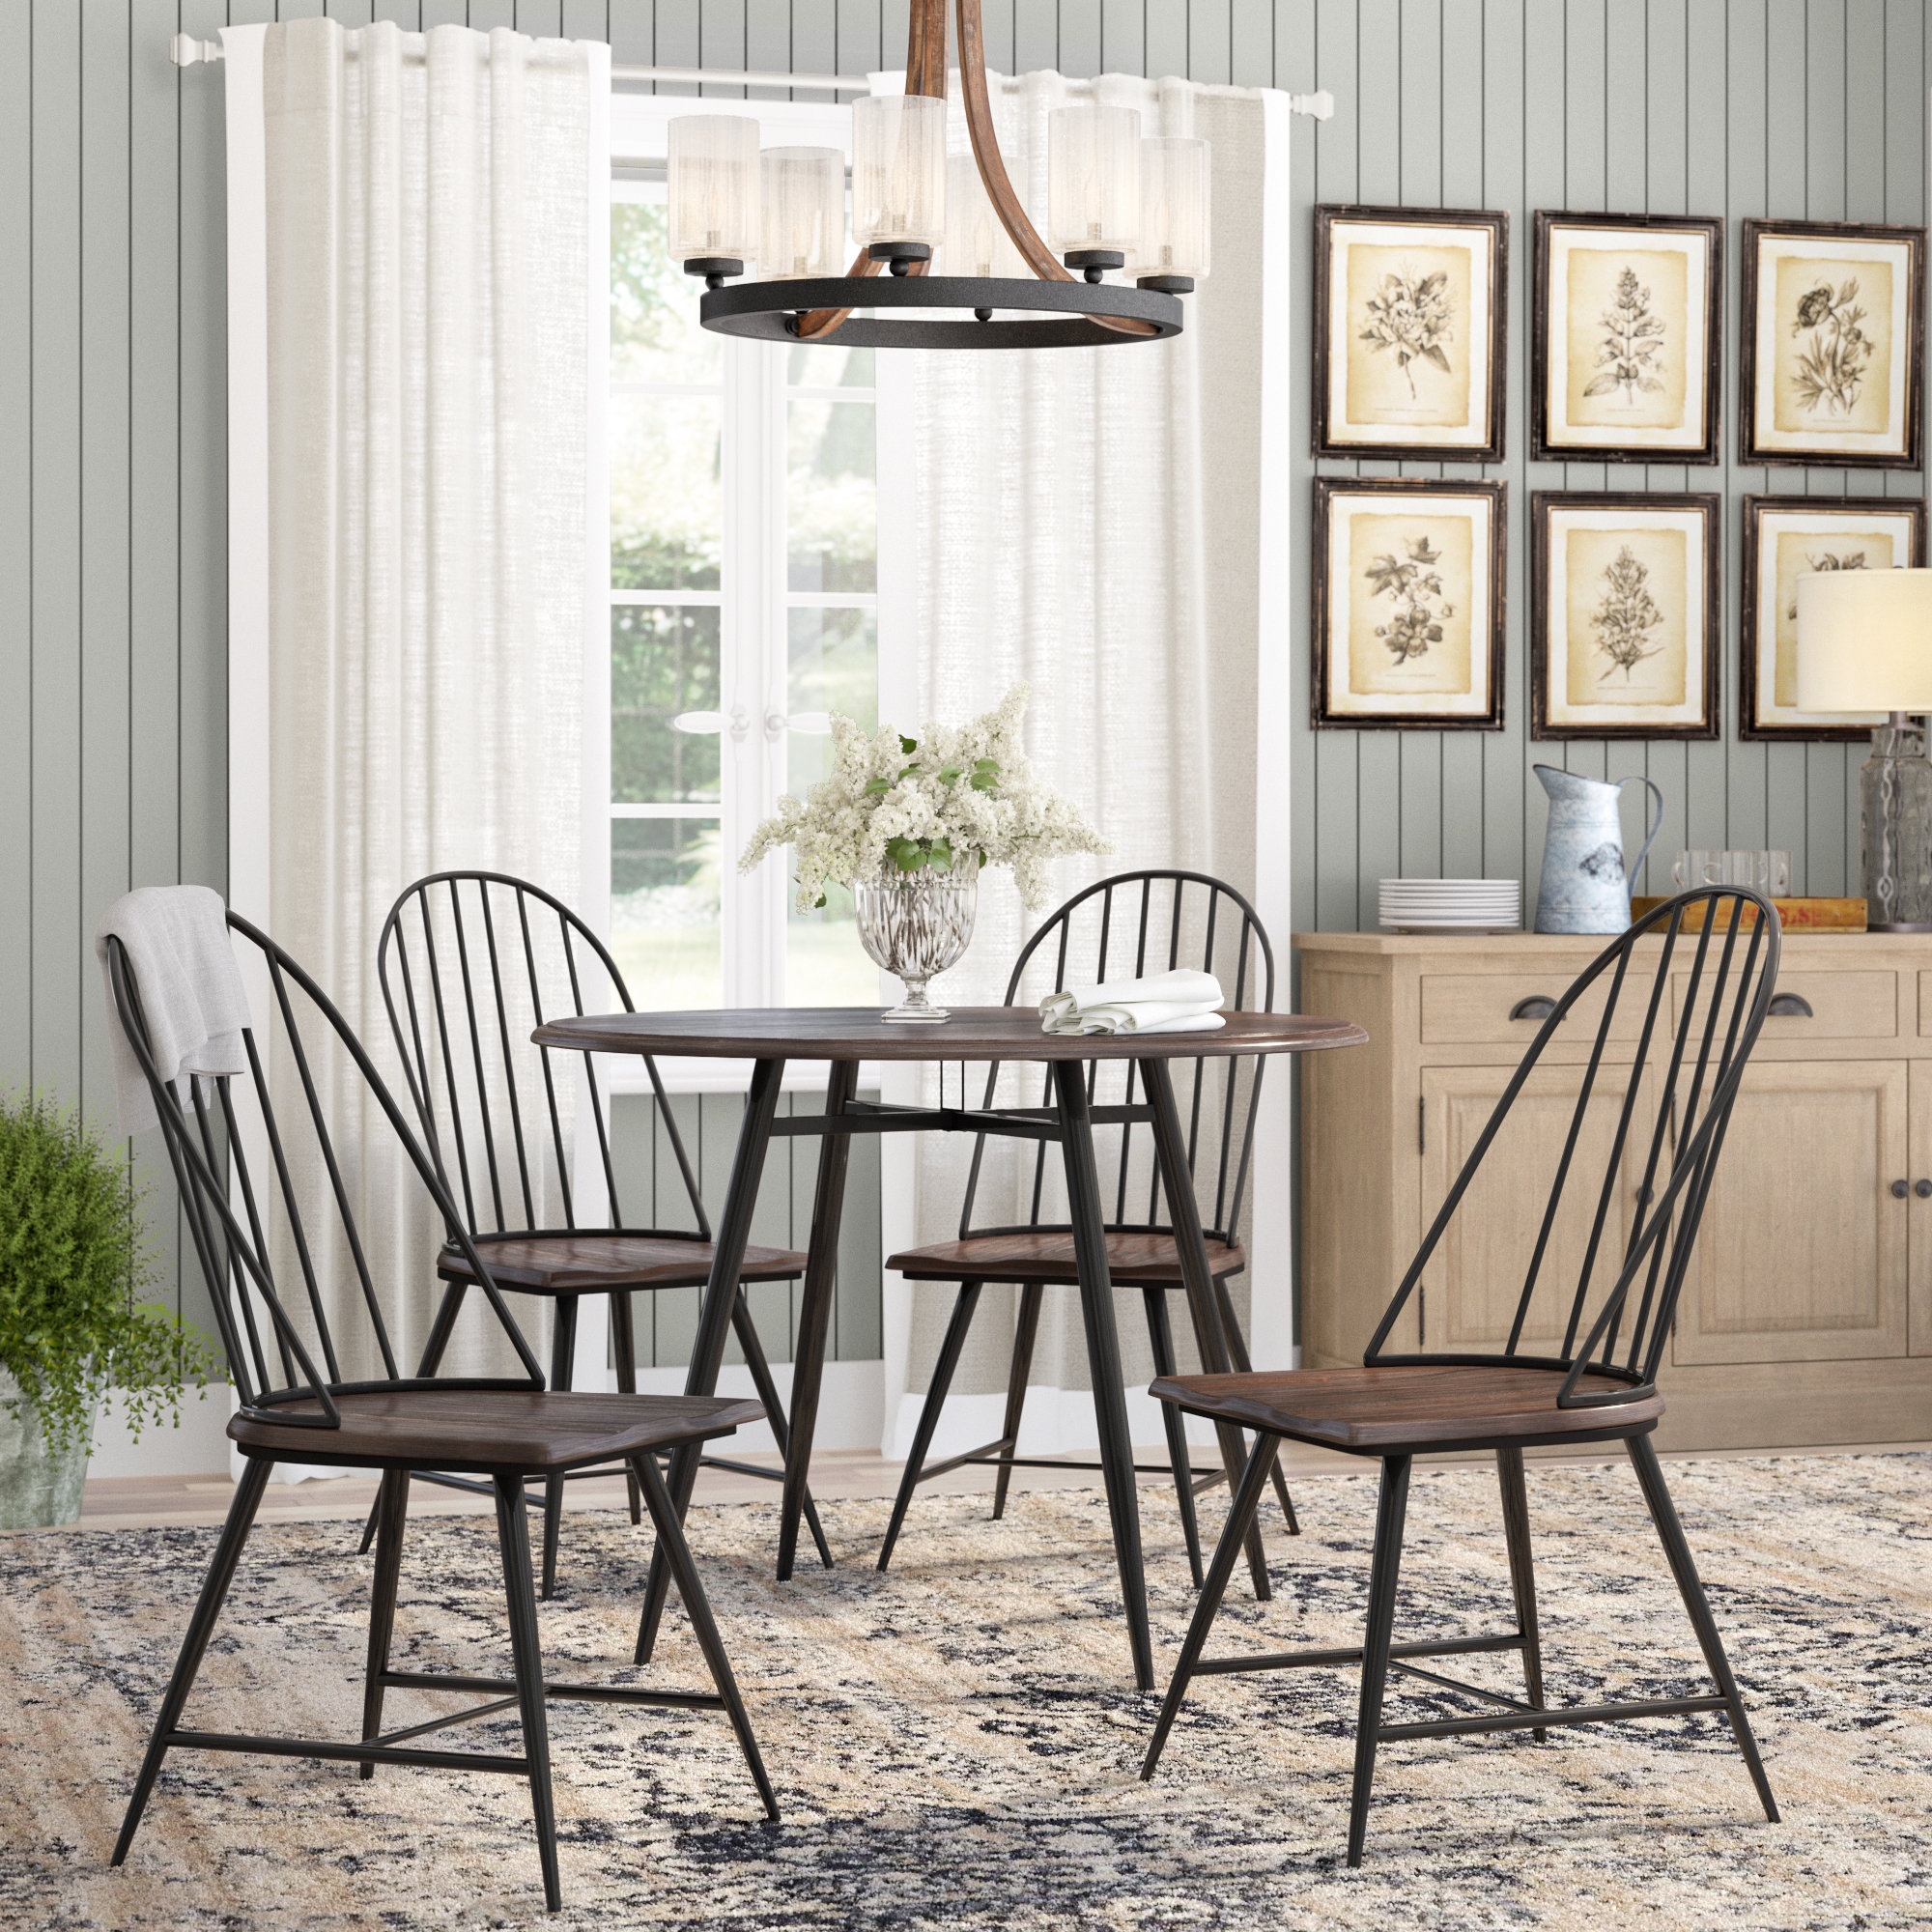 2018 Laurel Foundry Modern Farmhouse Hughley 5 Piece Dining Set & Reviews For Middleport 5 Piece Dining Sets (#1 of 20)